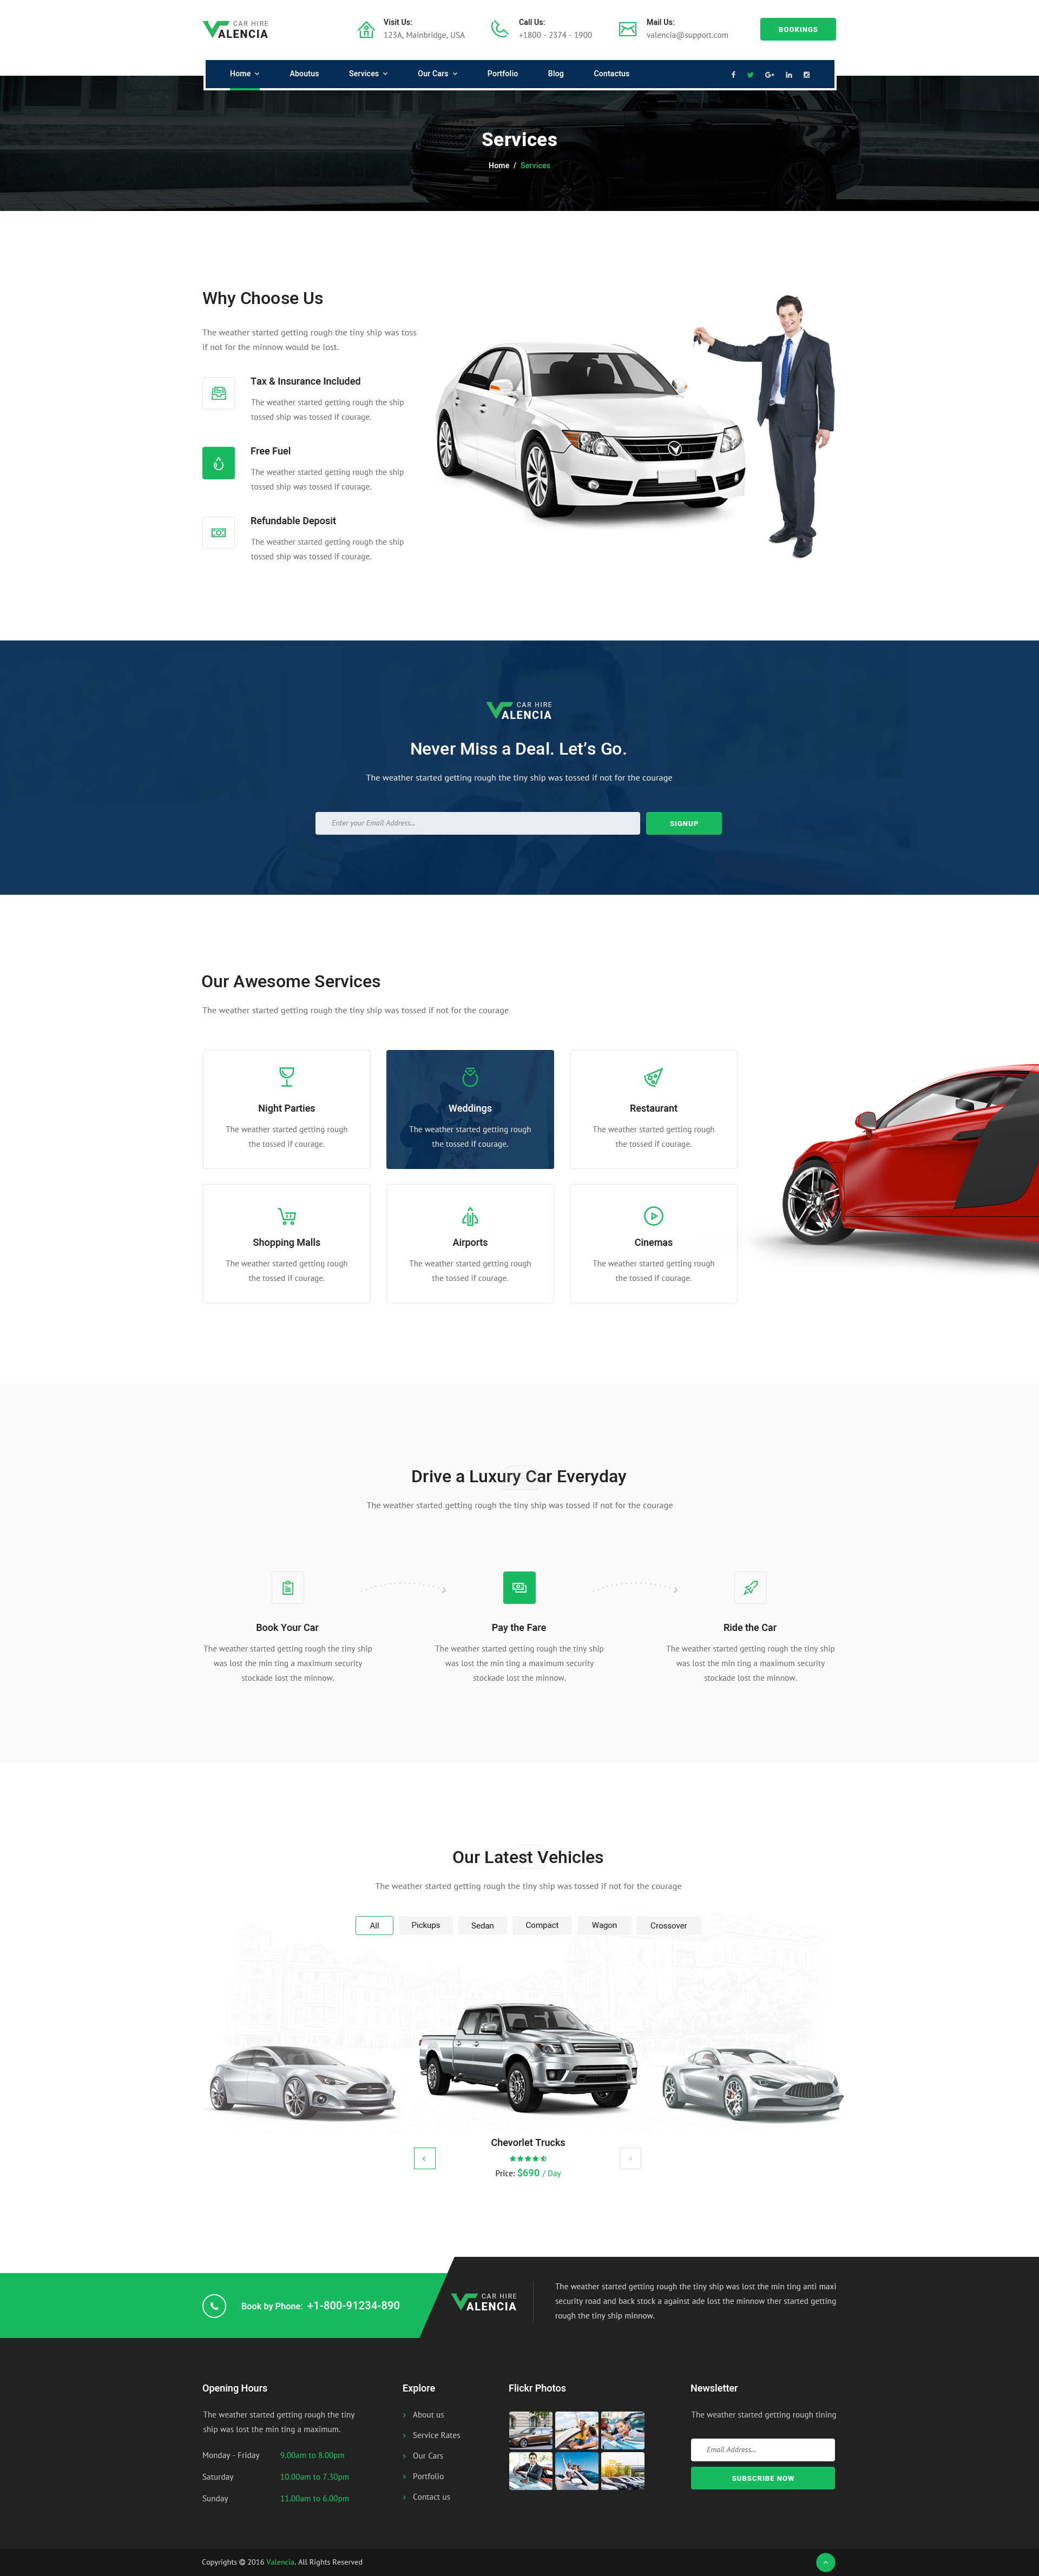 Valencia Car Hire Psd Template By Ifathemes Themeforest